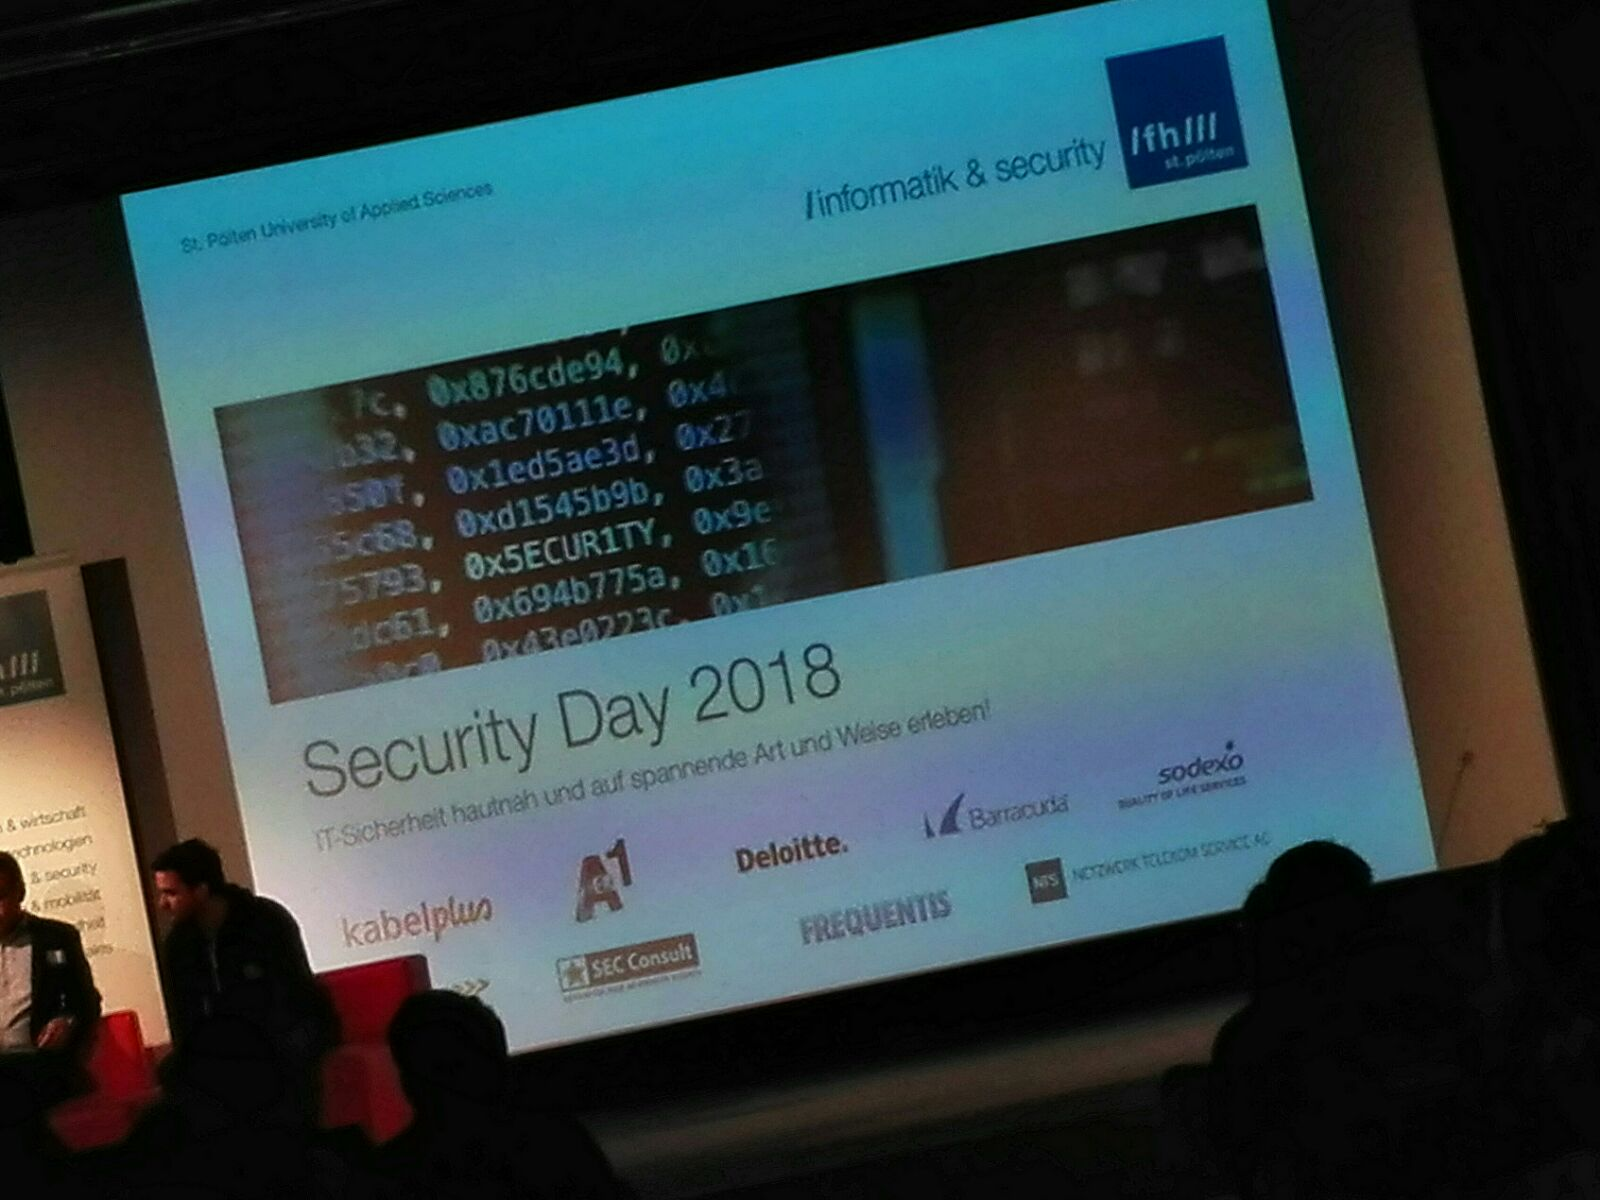 Security Day